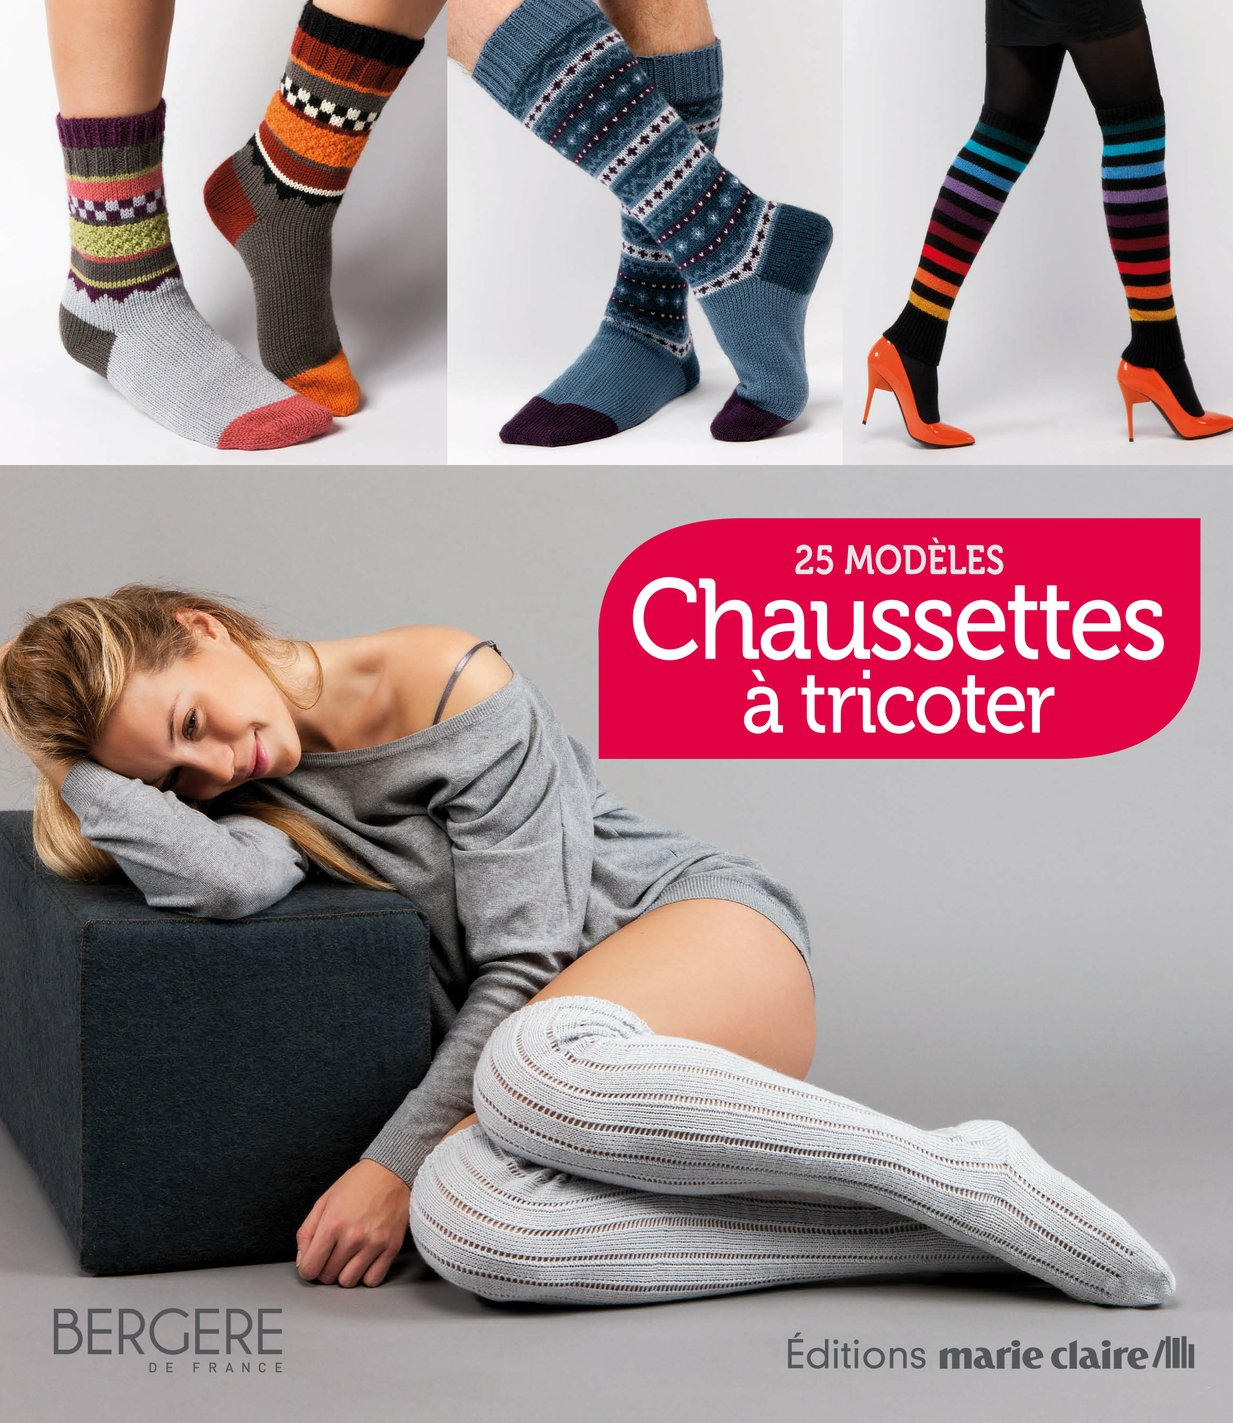 chaussettes a tricoter modeles